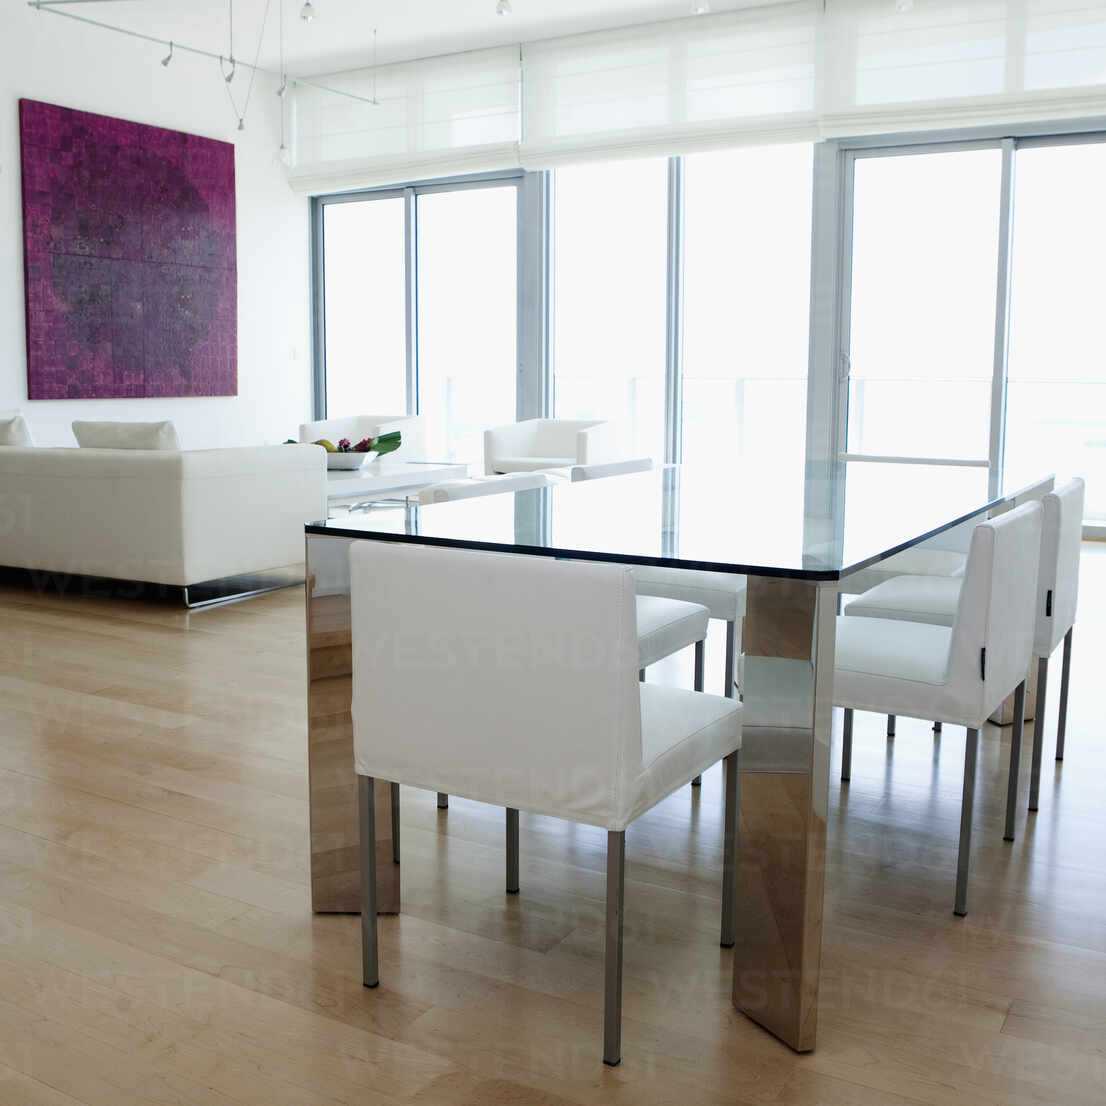 Dining table, chairs and sofa in modern living space – Stockphoto